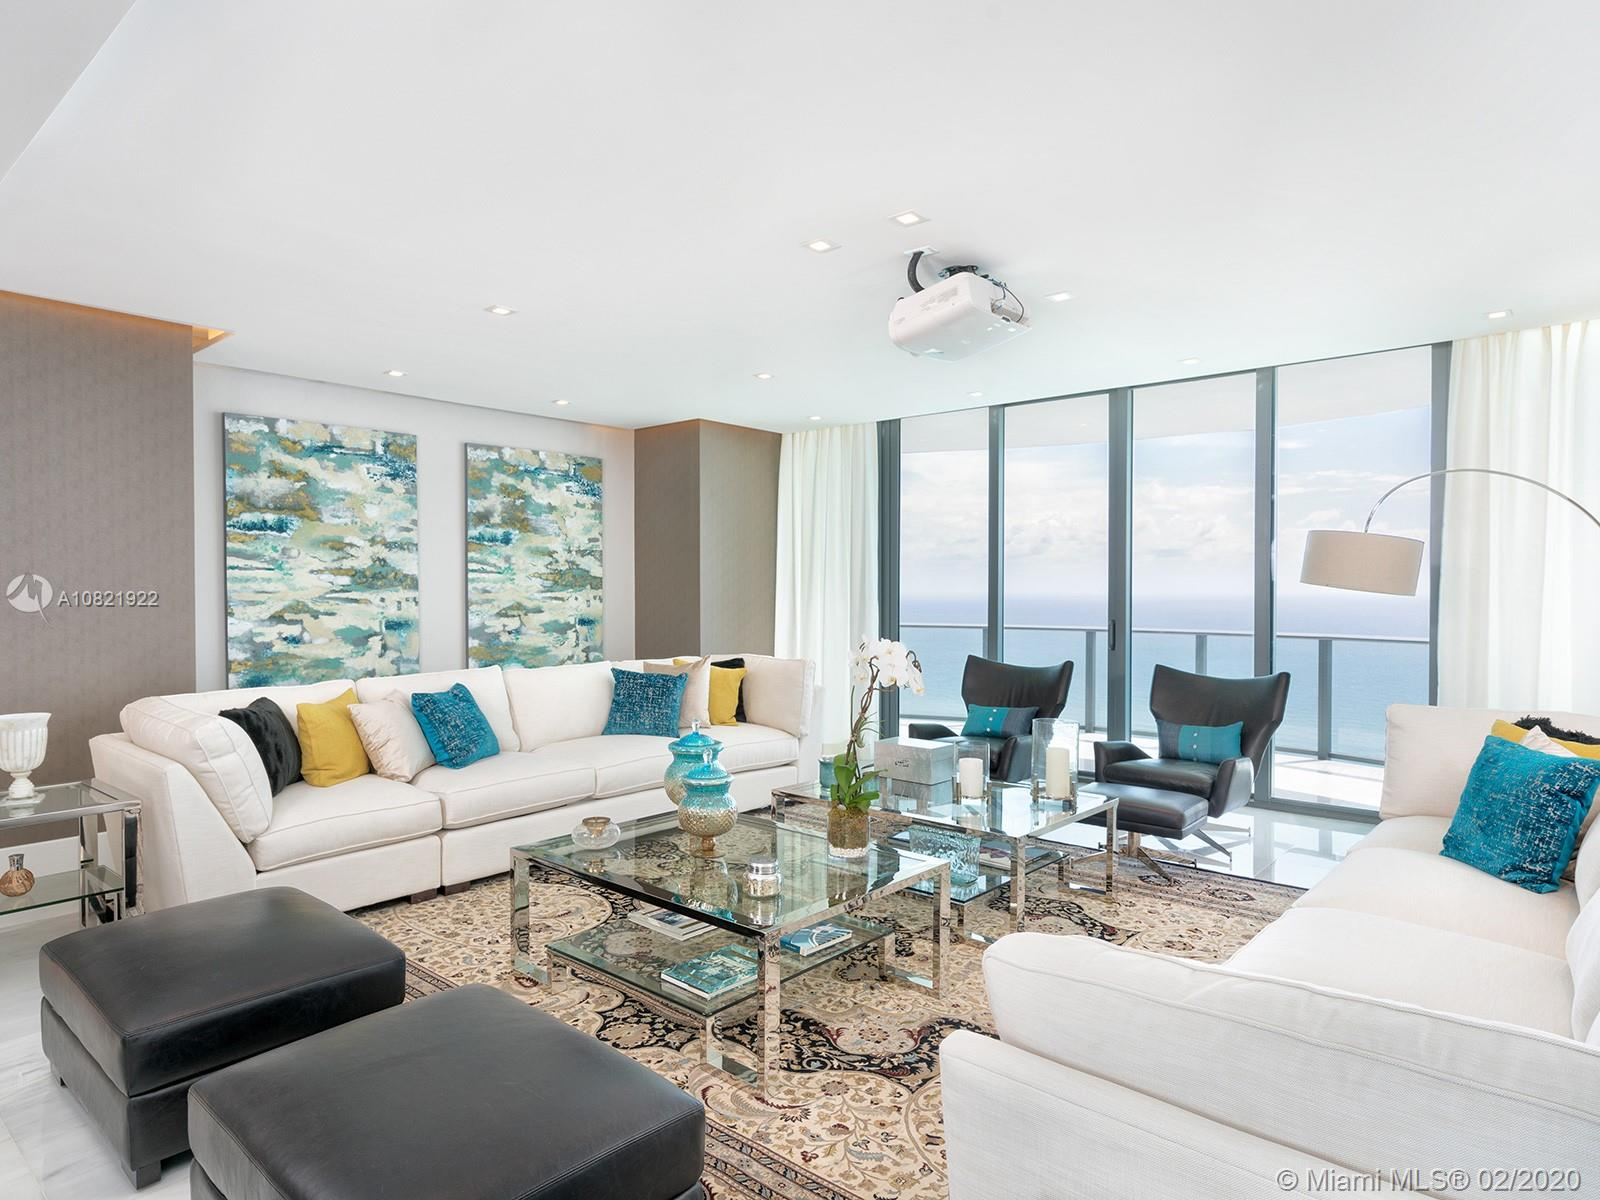 19575 Collins Ave, Unit #42 Luxury Real Estate